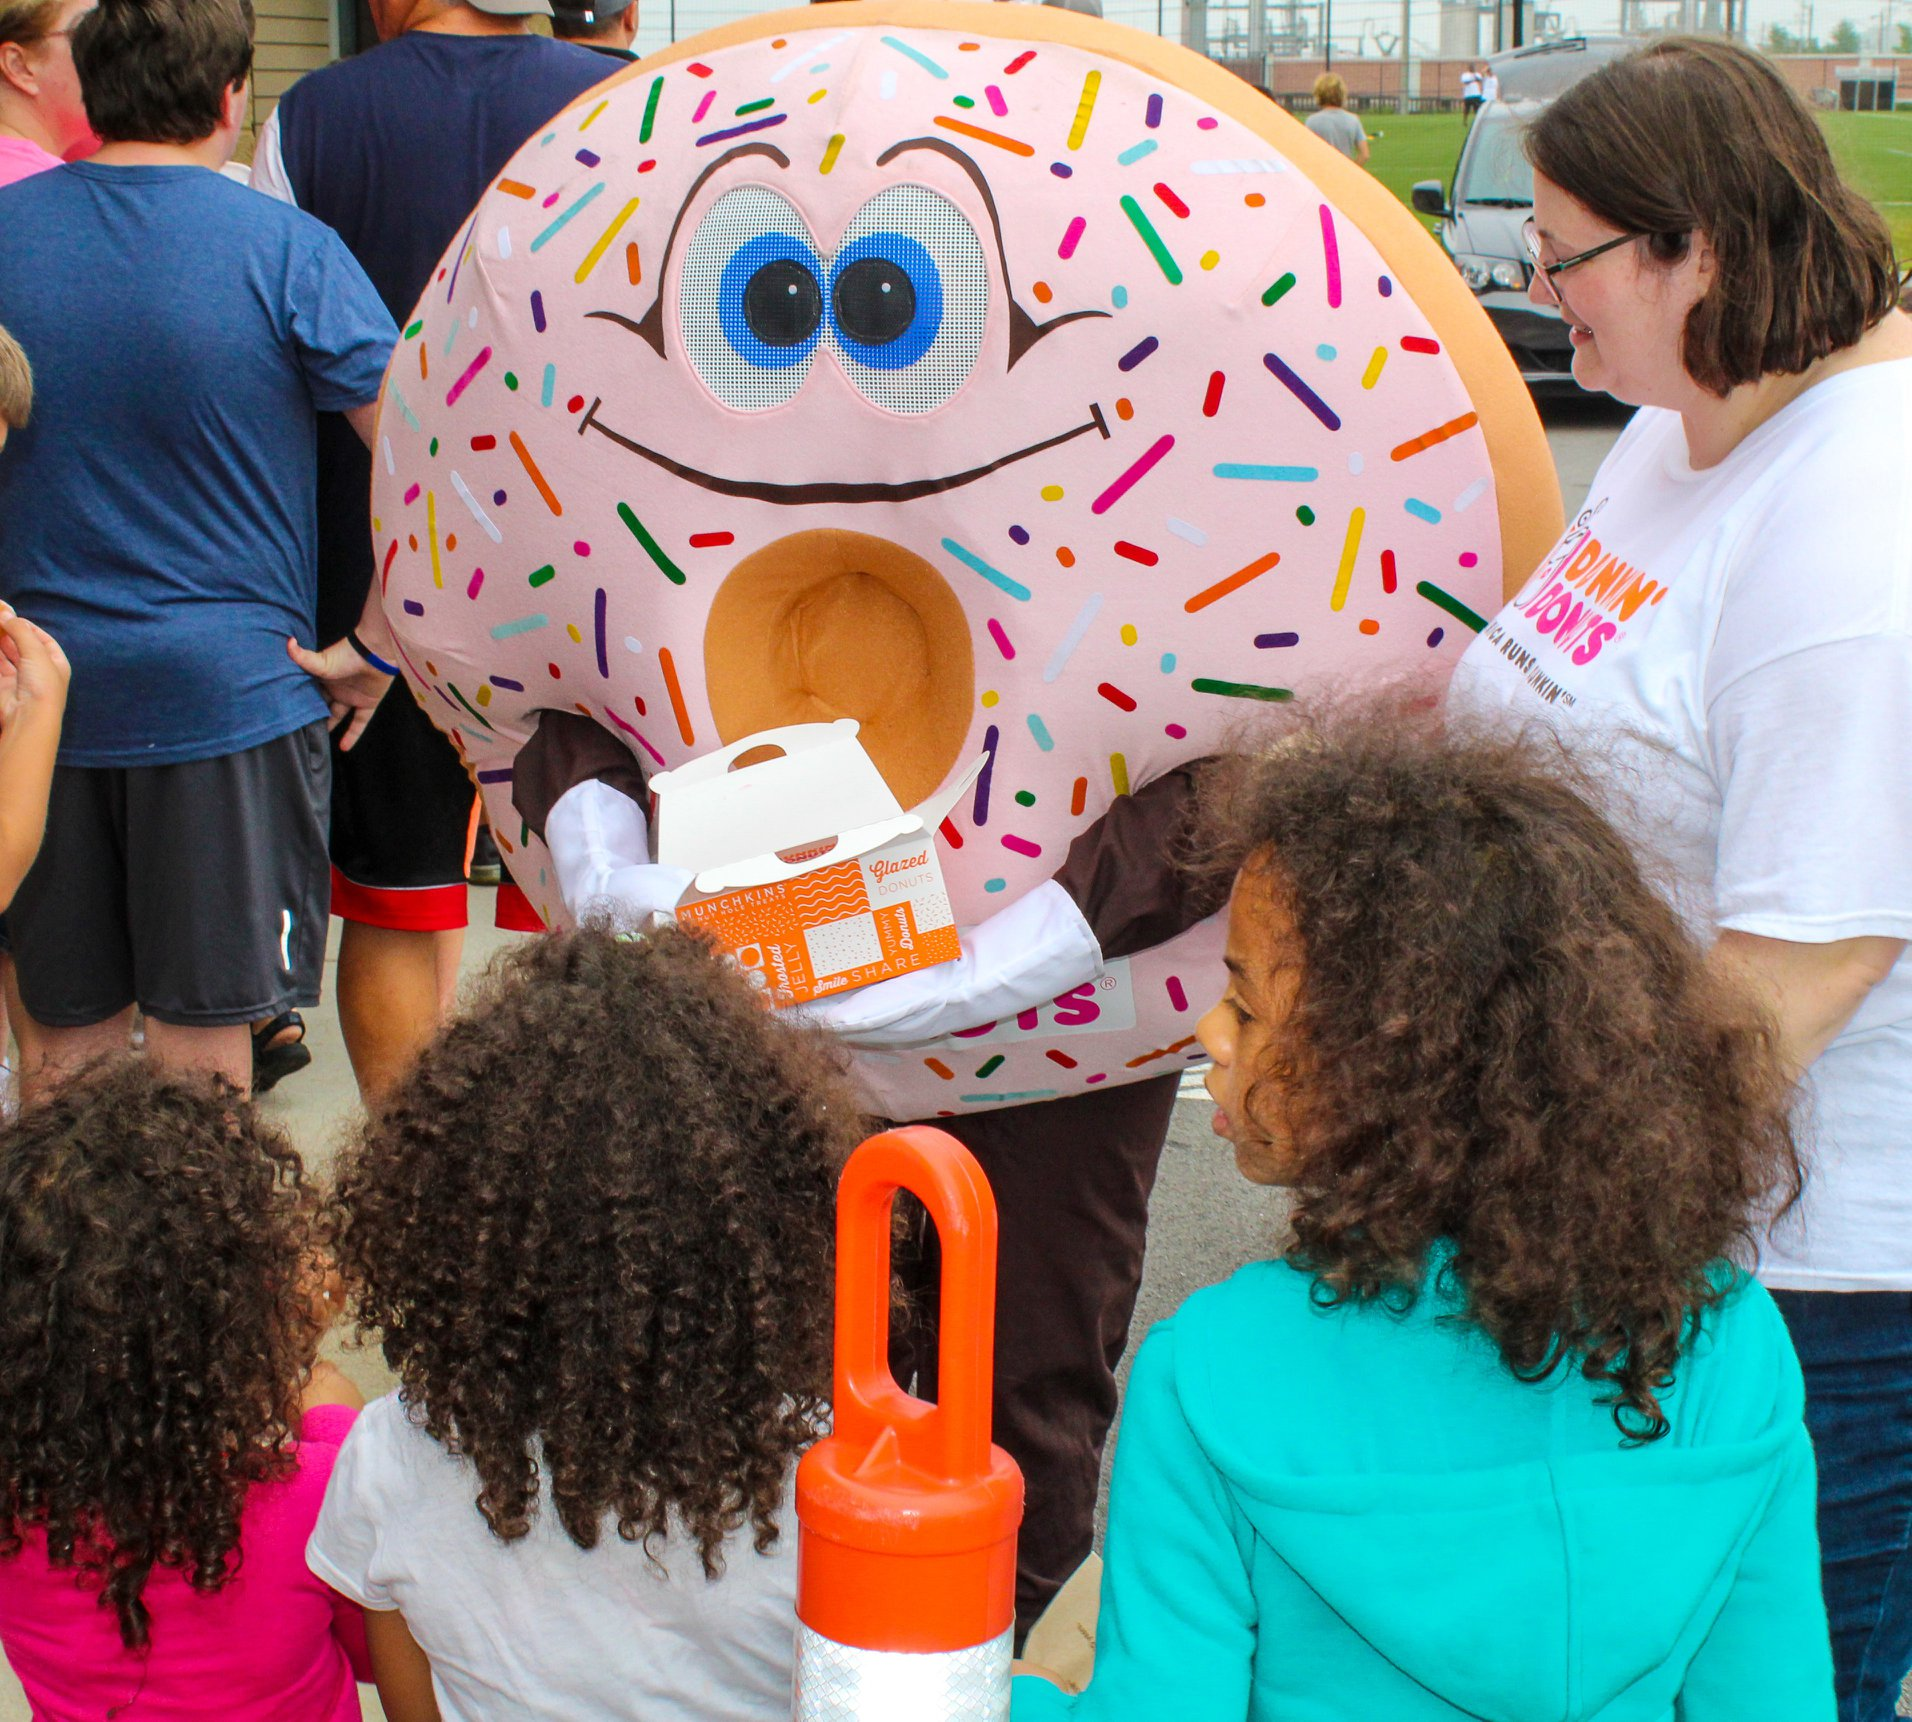 Our Donut Mascot hanging out with the kids at the Knoxville Football camp